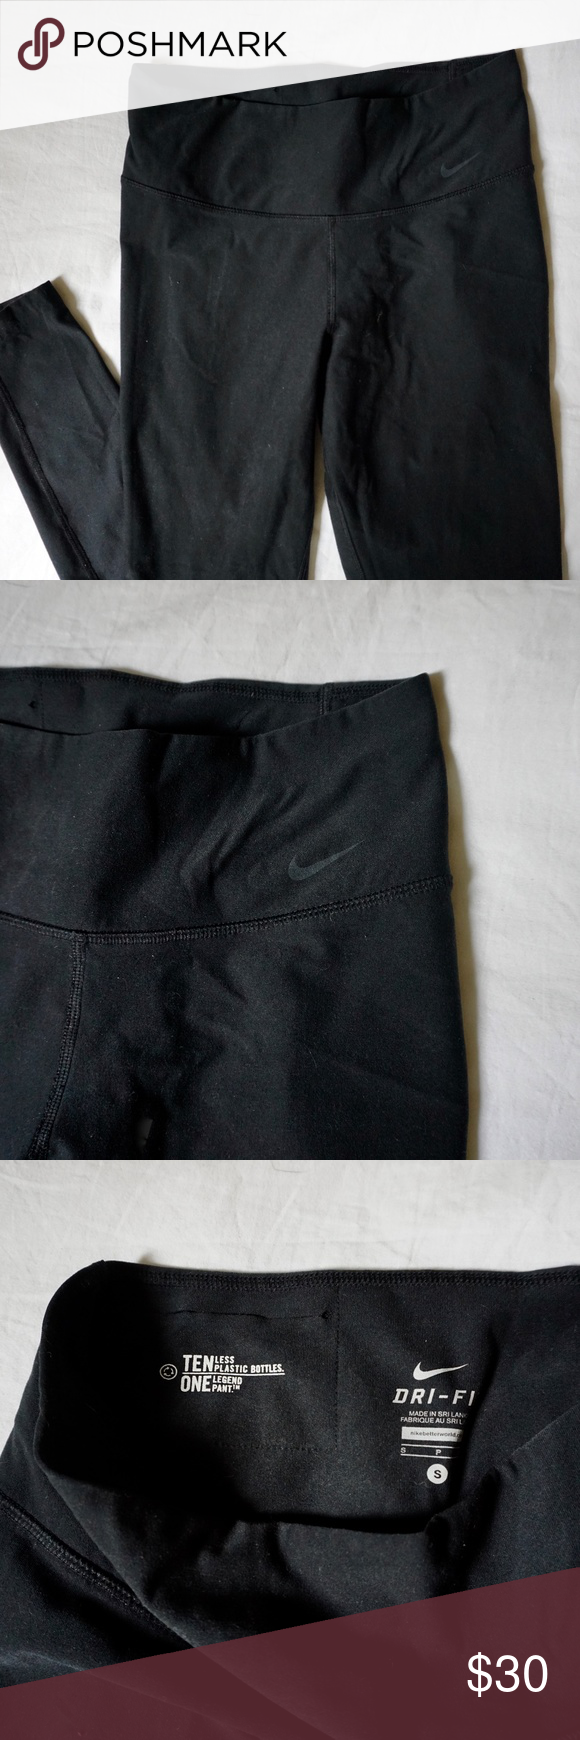 be4a811ca88f54 Ten Less Plastic Bottle Nike Legend Pant Ten Less Plastic Bottle Nike  running tights. Size S, dri-fit. Nike Pants Leggings